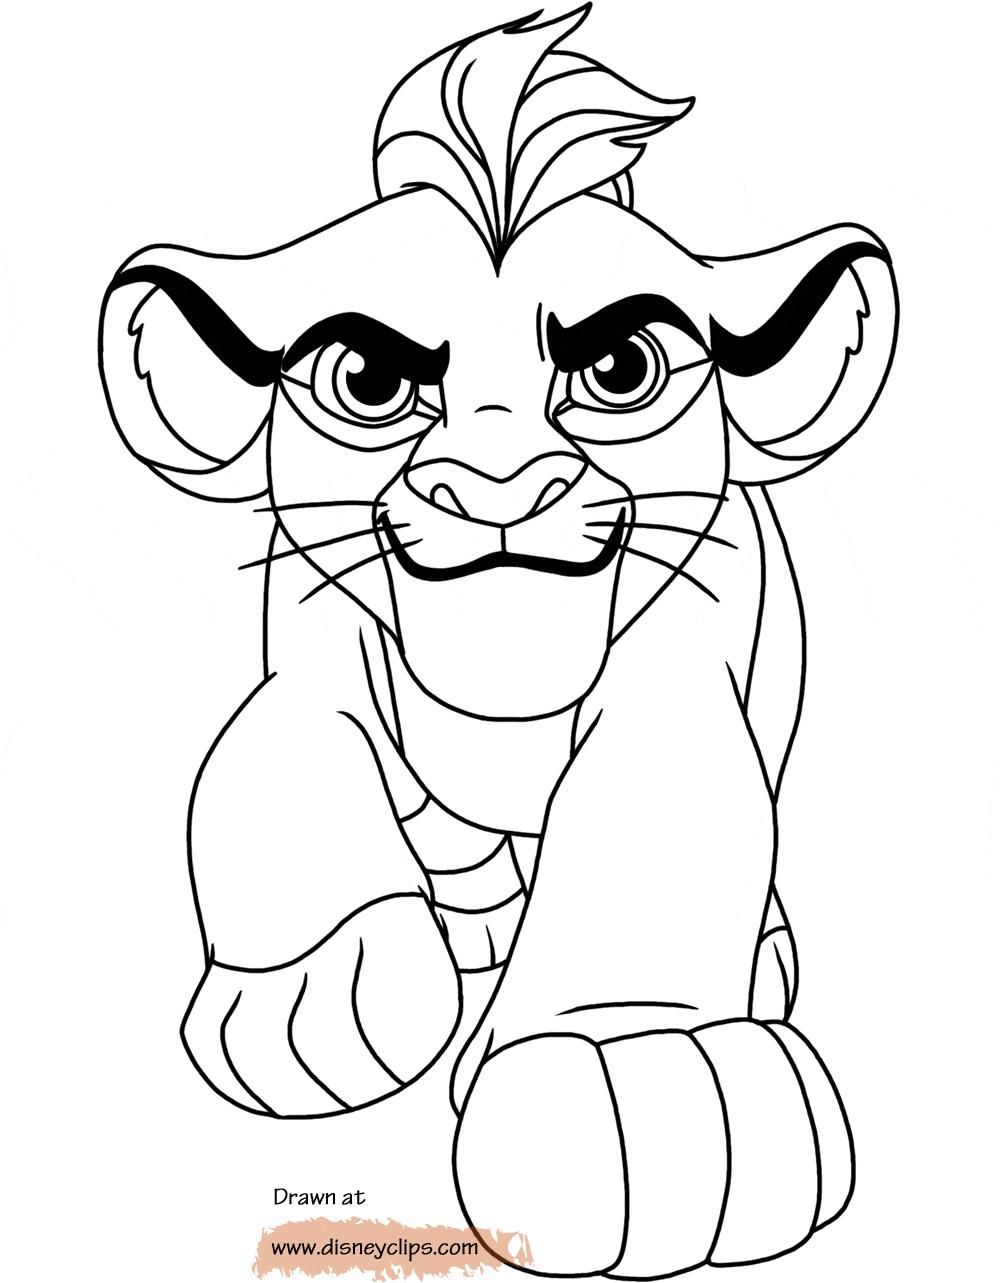 42 Coloring Page Lion King Horse Coloring Pages Coloring Books Disney Coloring Pages